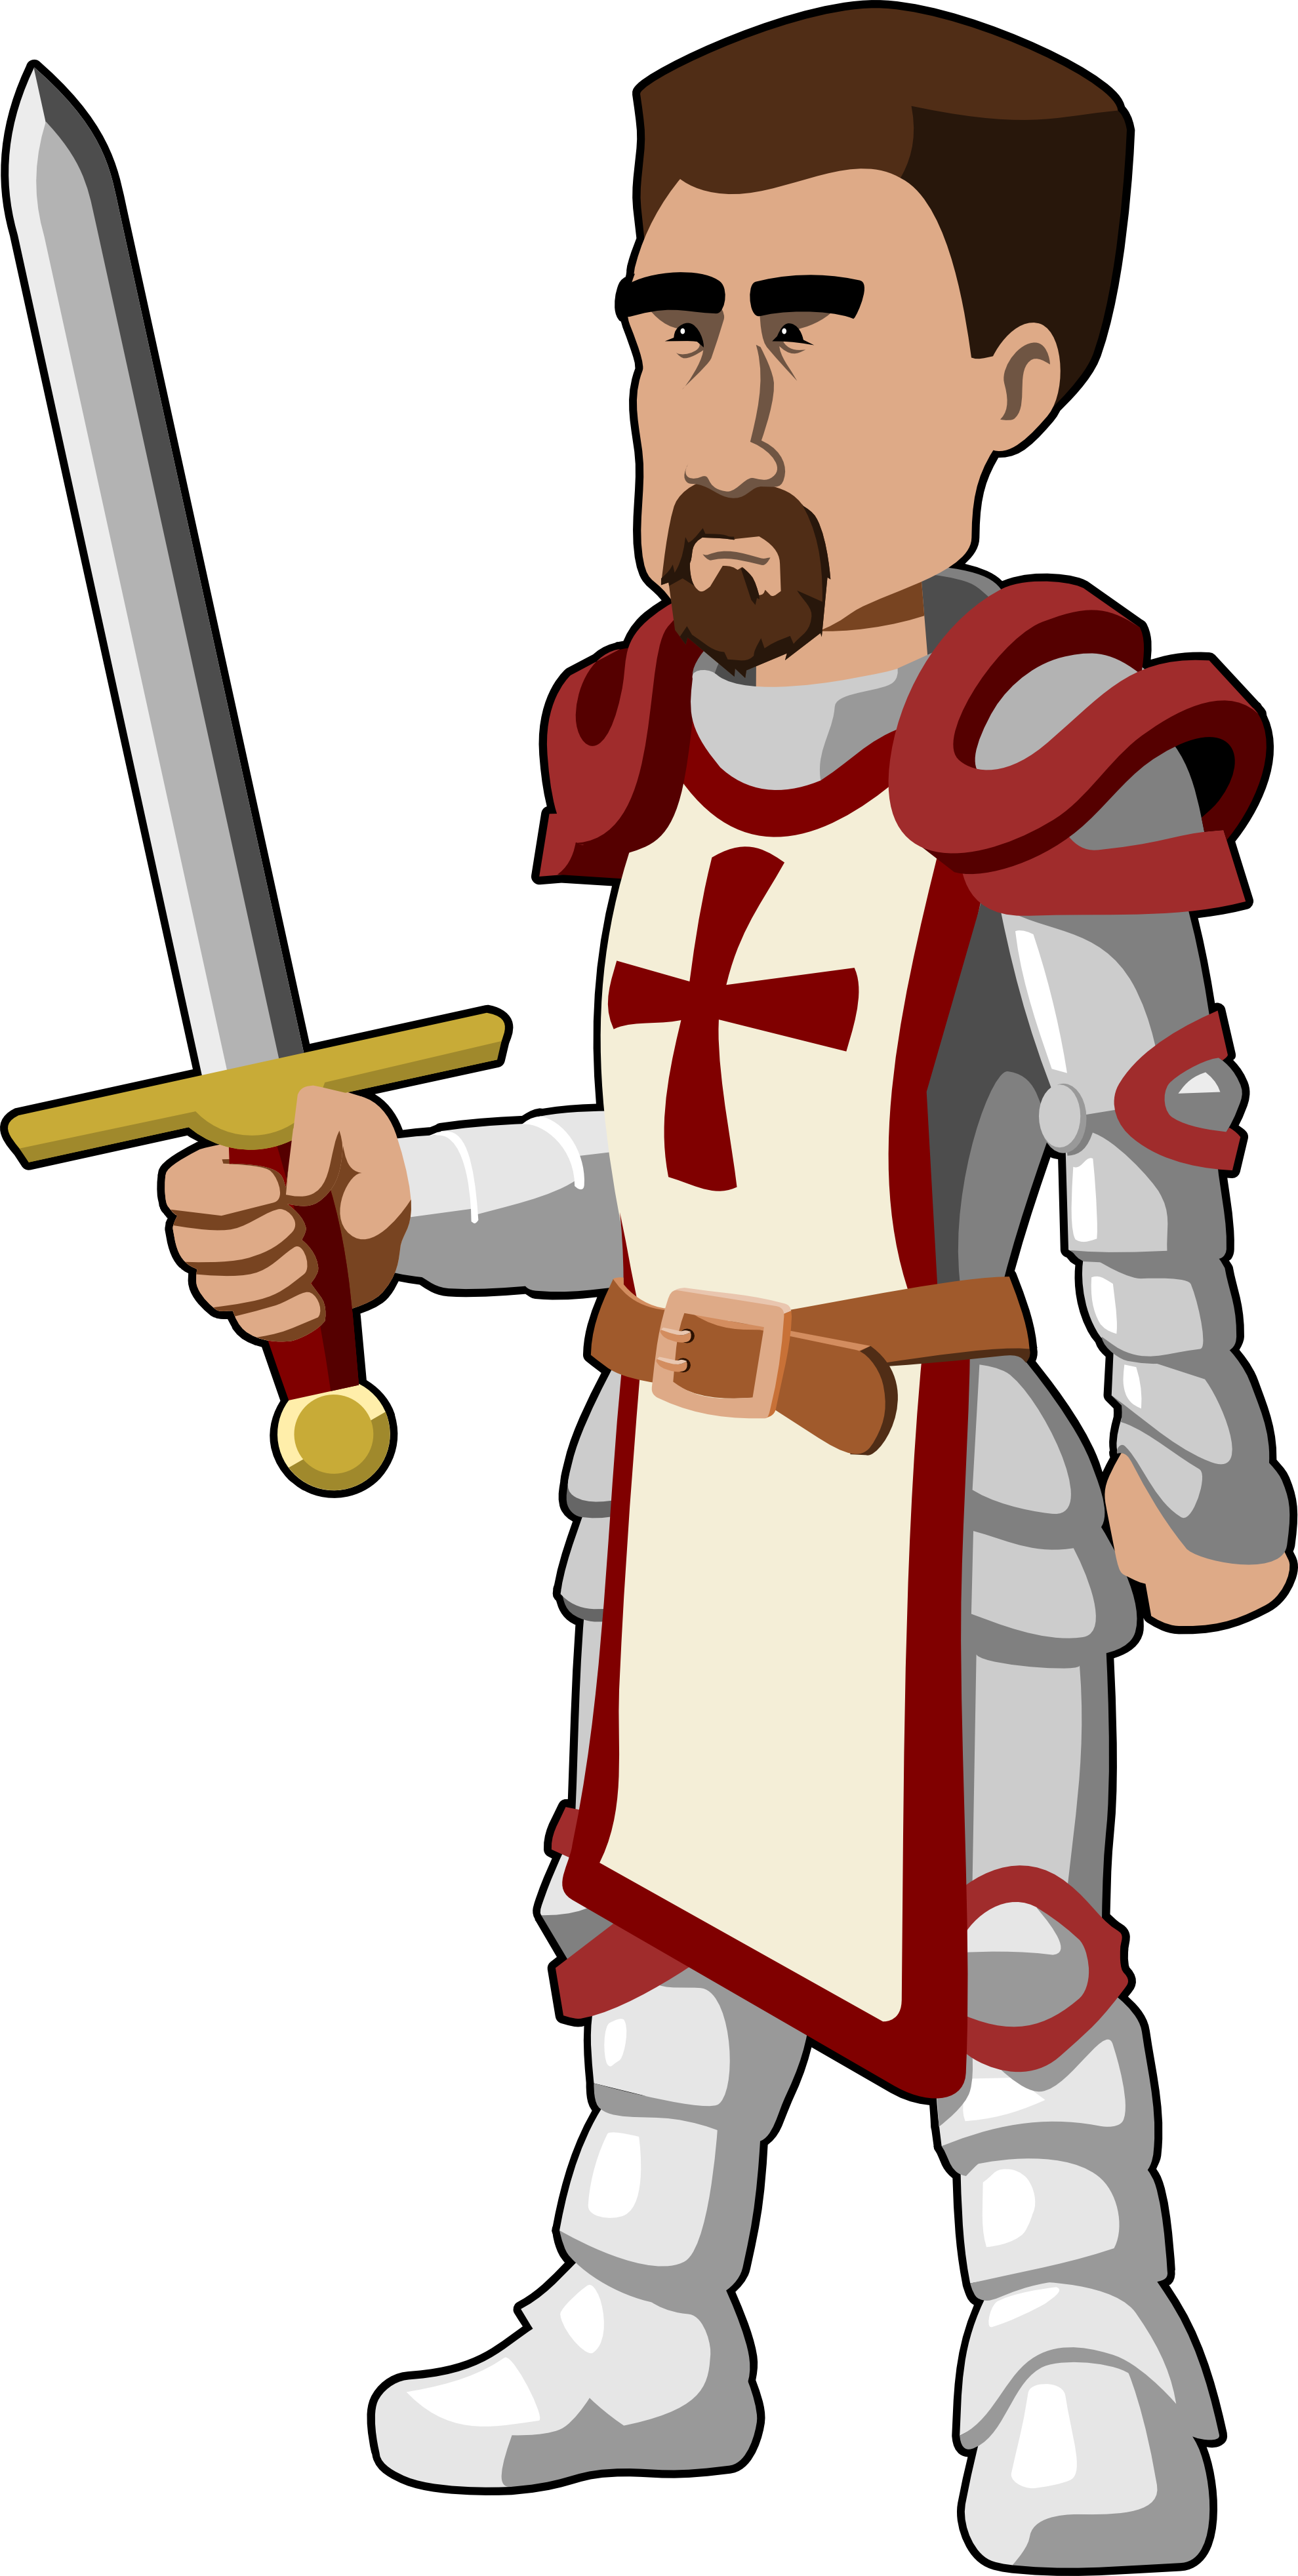 Castle clipart medieval army Clipart cliparts Medieval clipart Collection